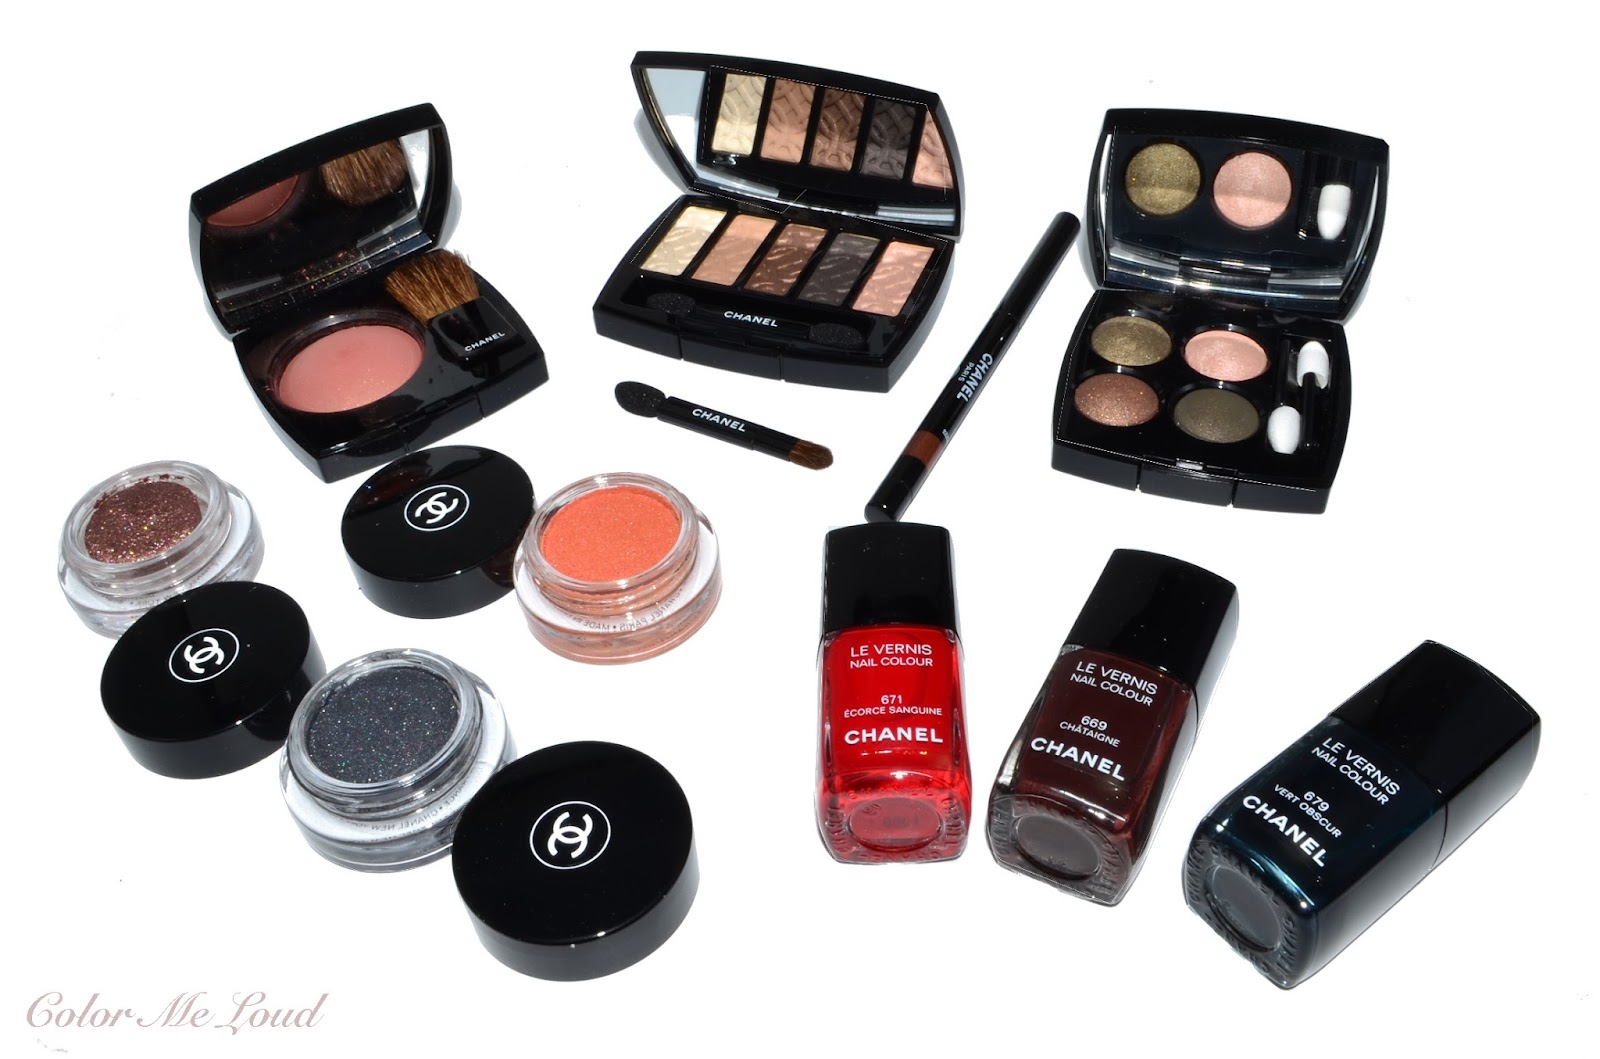 Automnales les chanel fall makeup collection recommend to wear in spring in 2019